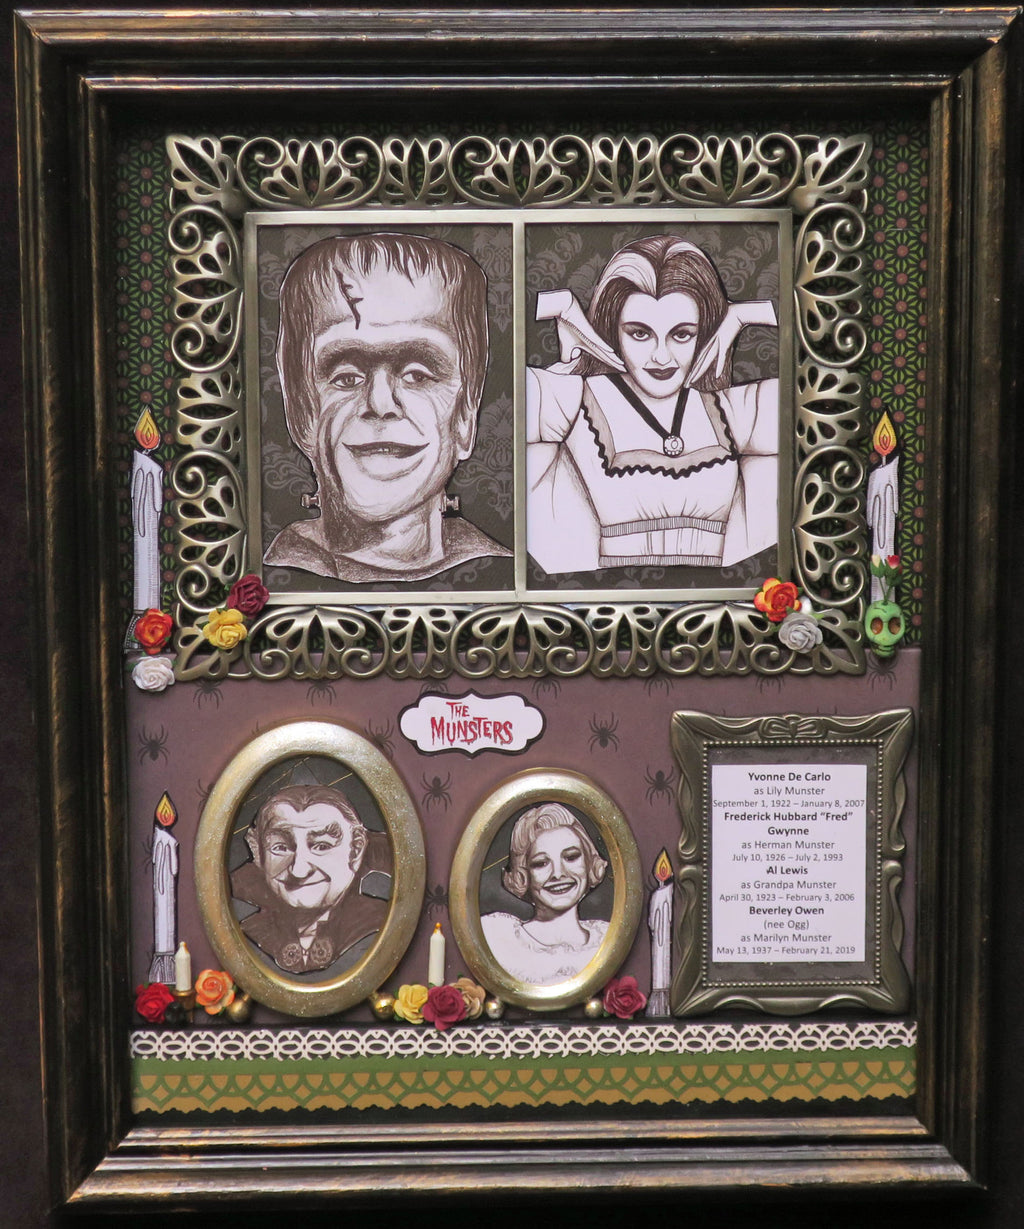 The Munsters Dia de los Muertos tribute shadowbox